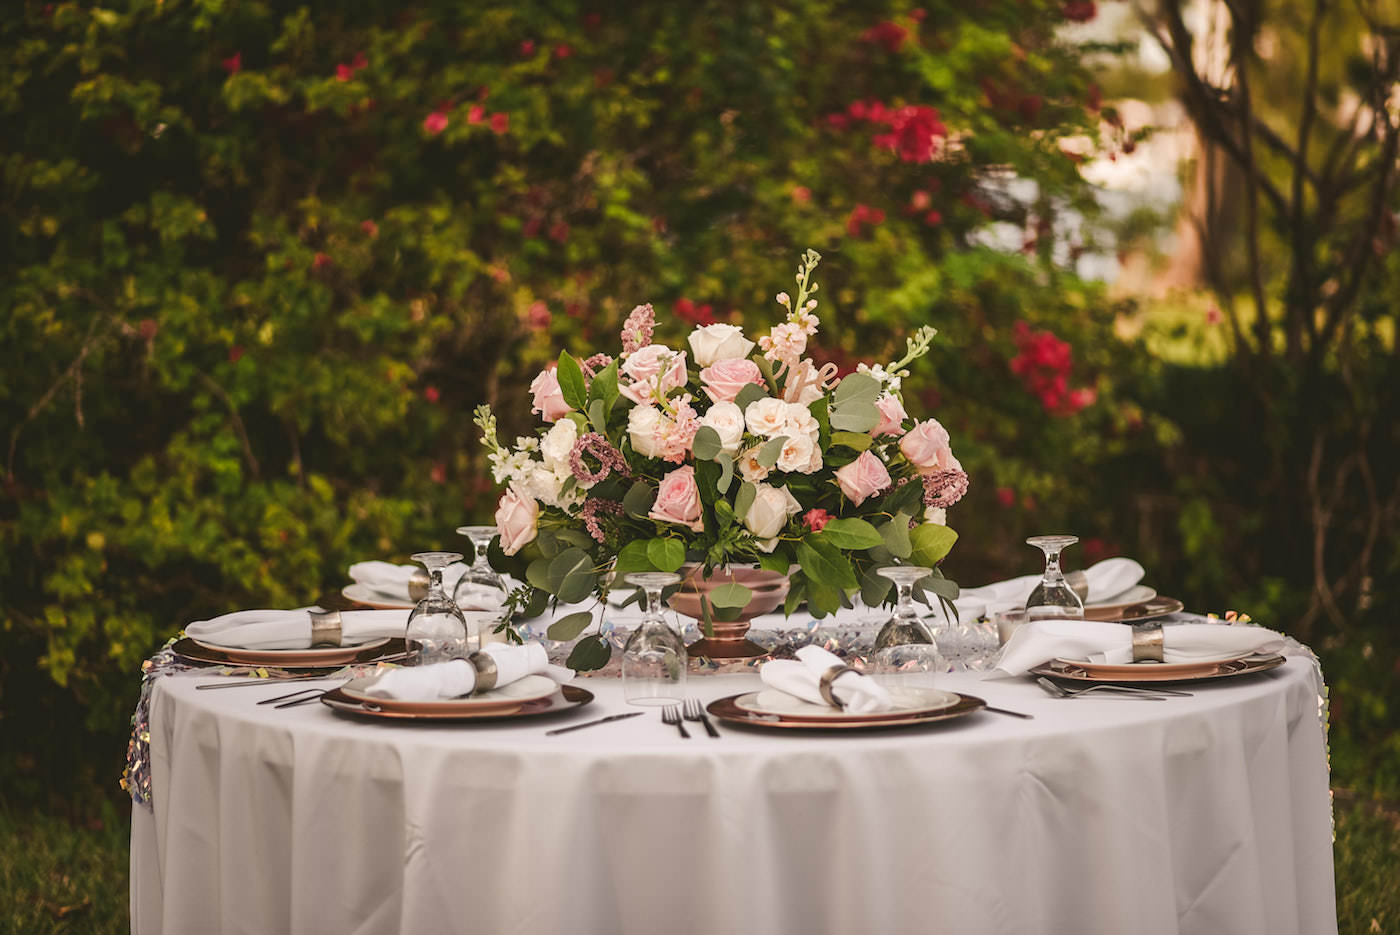 Tampa Outdoor Waterfront Garden Wedding Reception Guest Tables with Sequin Runners and Blush Pink and White Rose Centerpieces with Eucalyptus Greenery and Gold Charger Plates